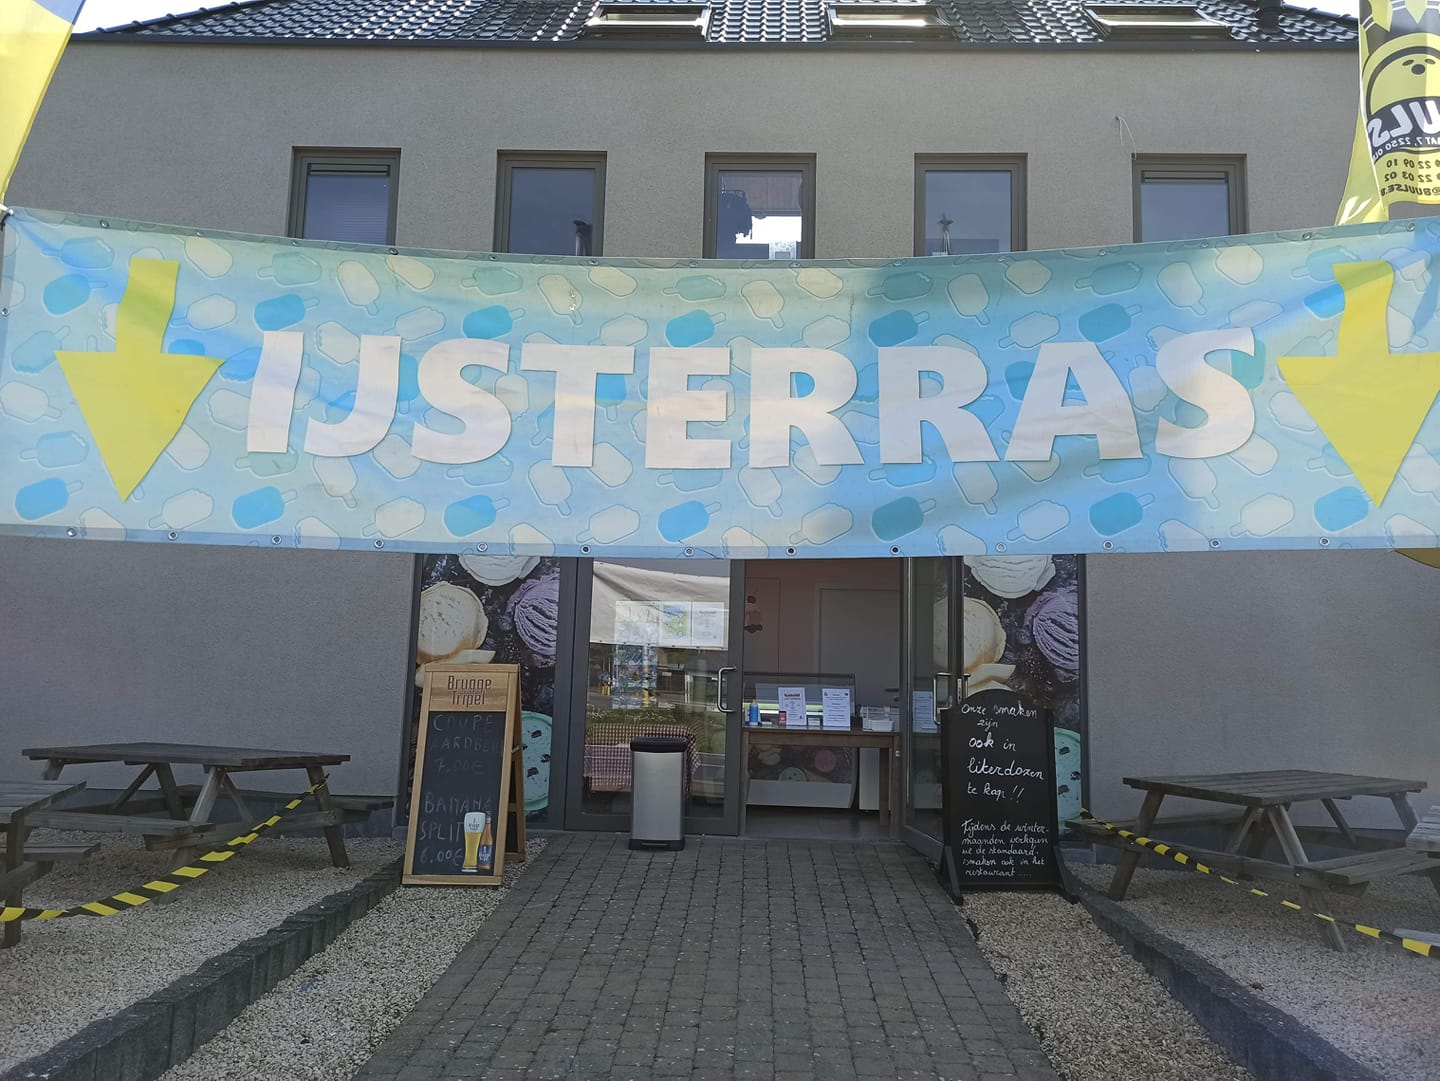 ijsterras front pic